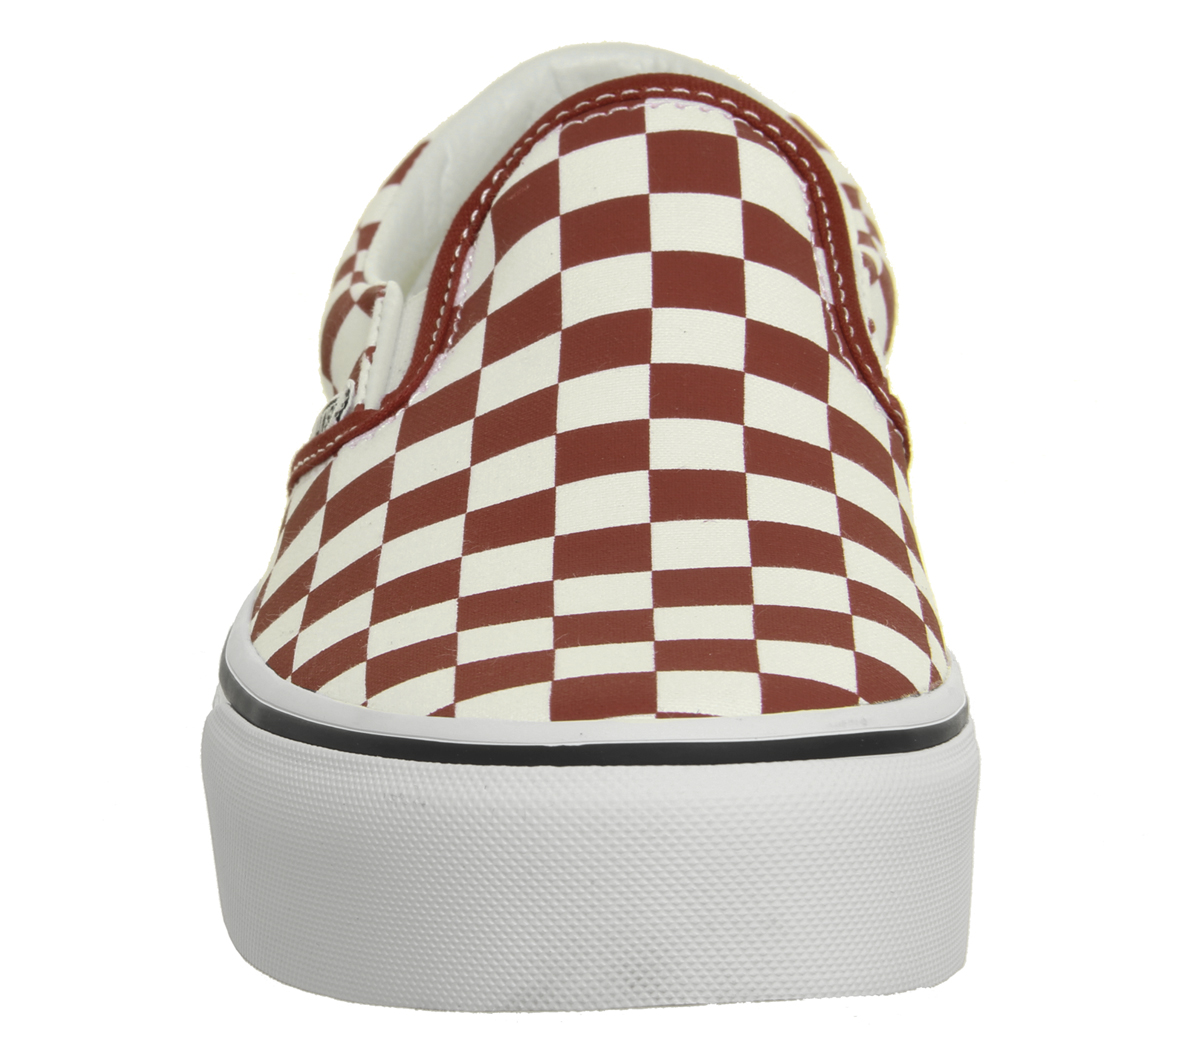 3bf29abc48 Womens Vans Classic Slip On Platform Trainers Red White Checkerboard ...